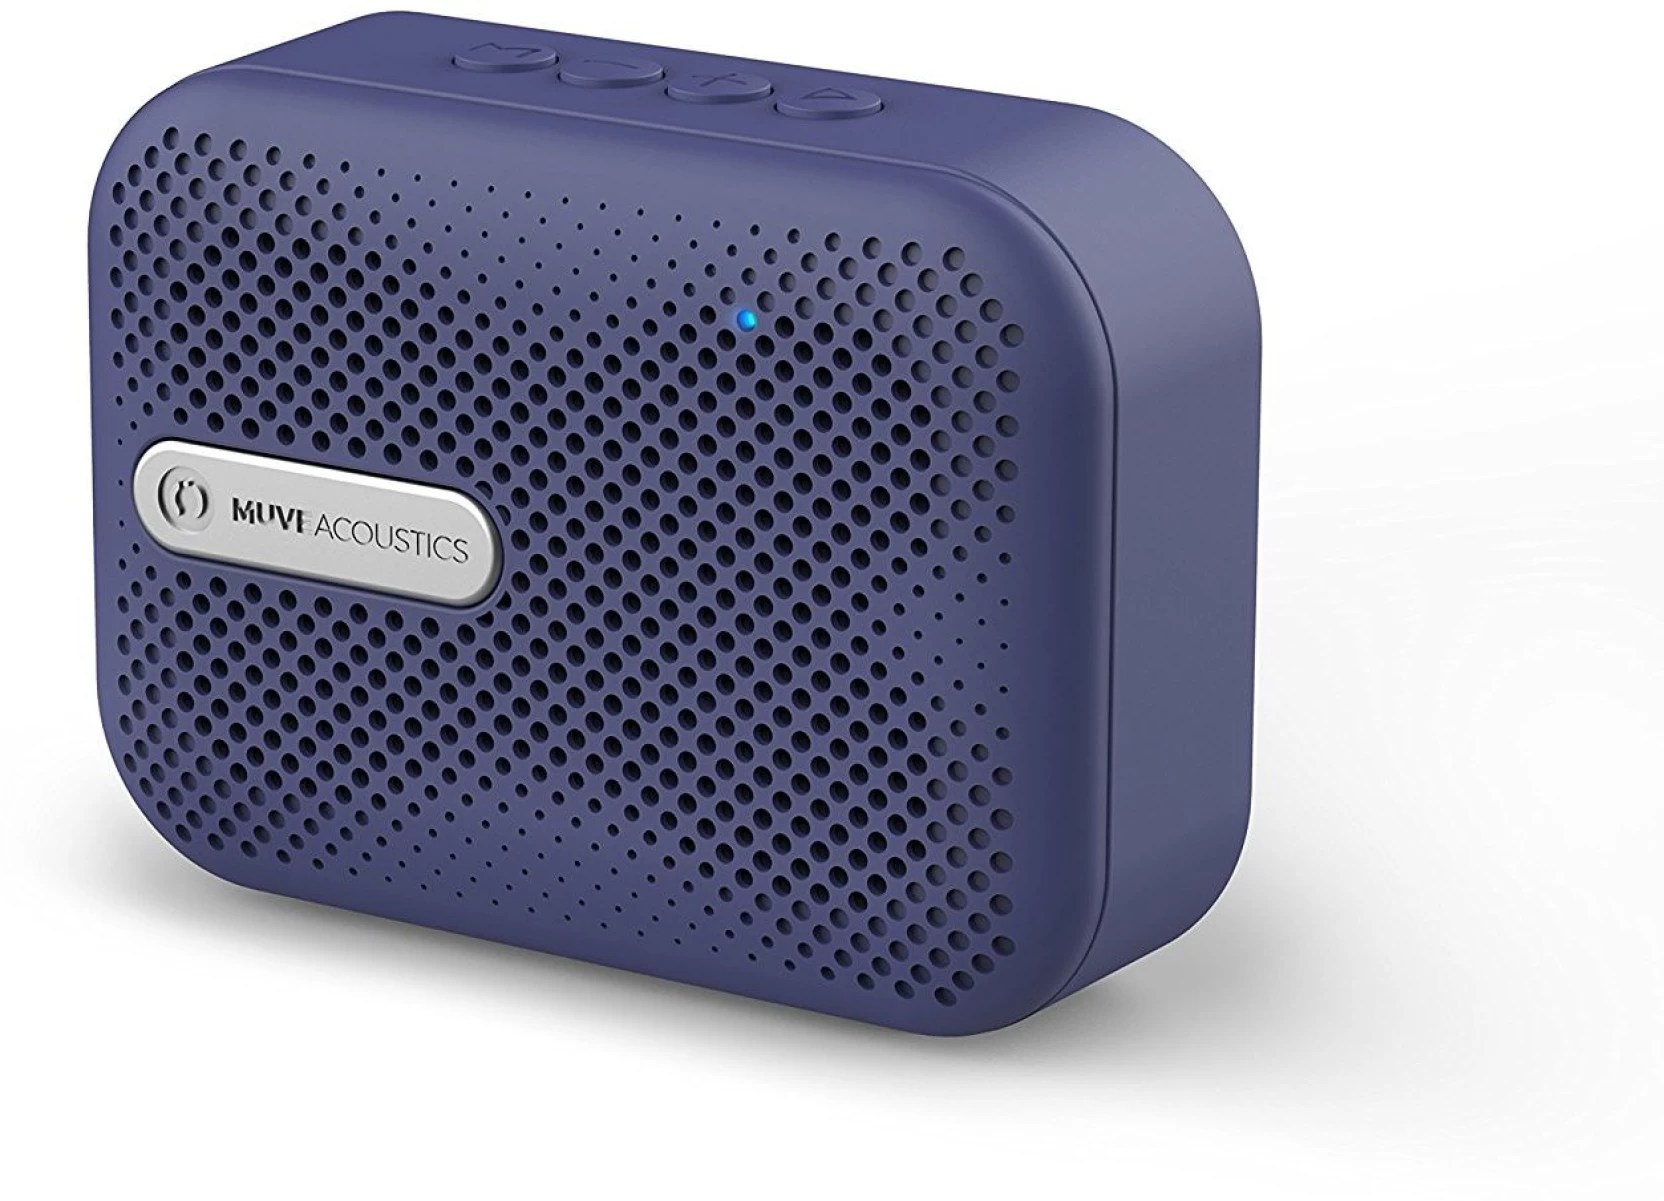 Box Bluetooth Muveacoustics Box Bluetooth Wireless Speaker Usb Micro Sd Card Slot Mic Flagship Blue 3 Bluetooth Speaker